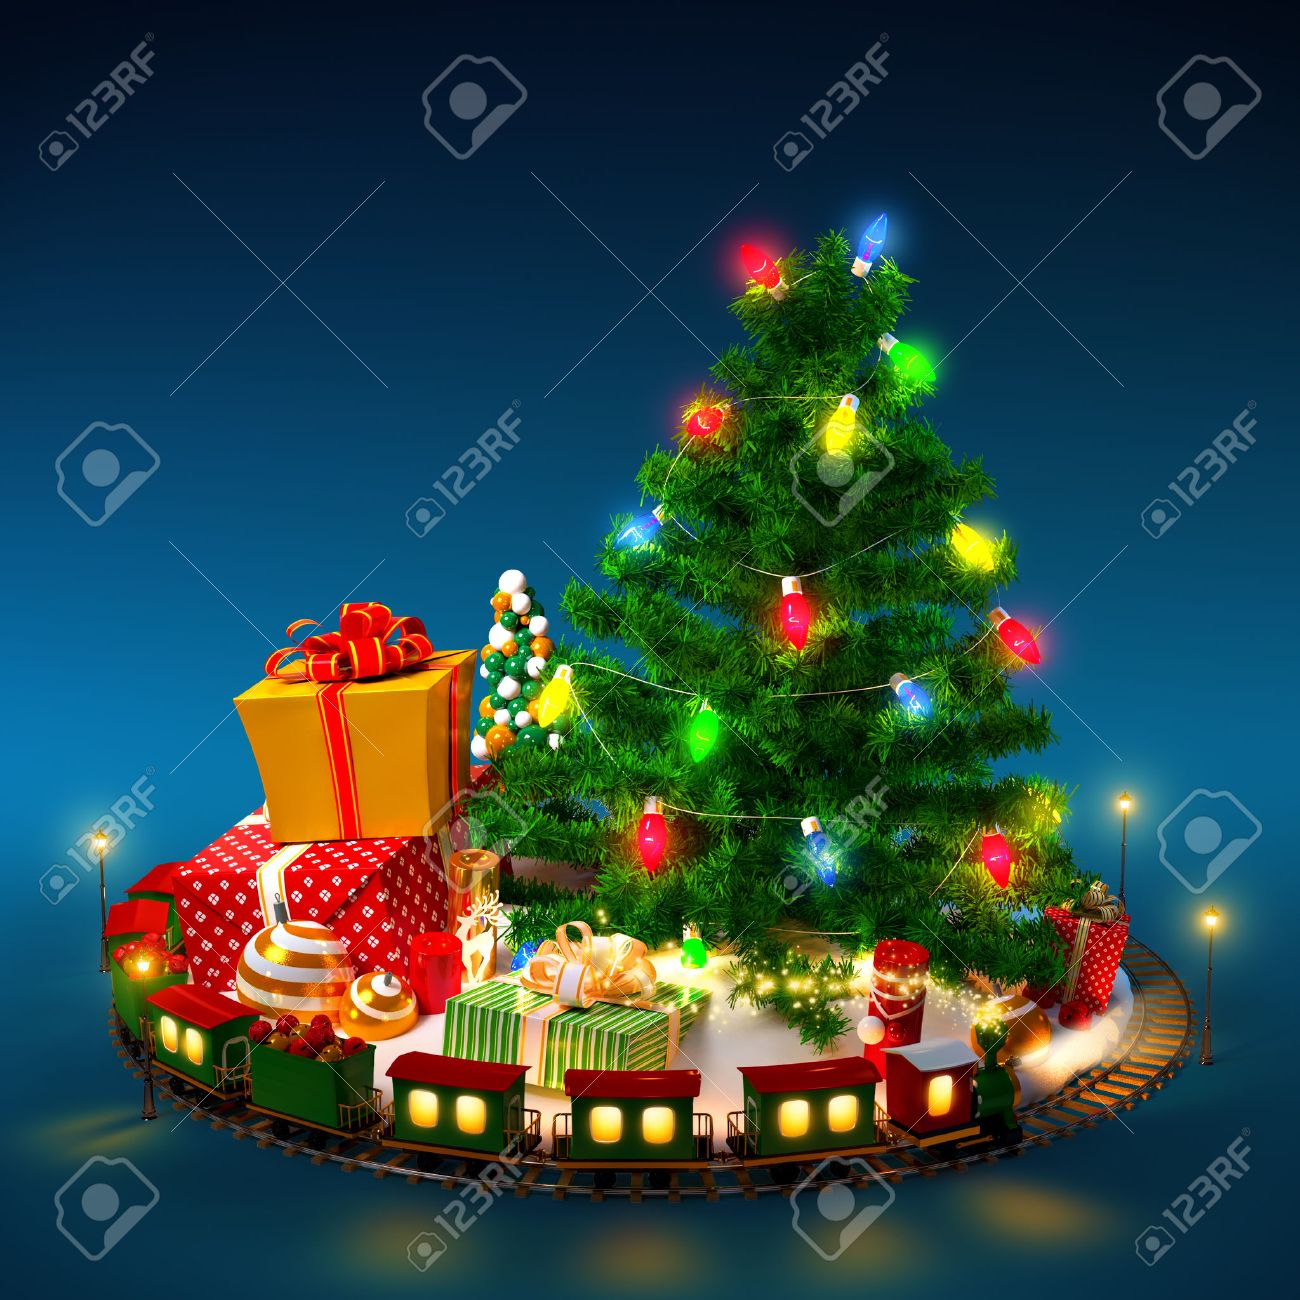 Fondos de escritorio, entra y llevate uno-http://previews.123rf.com/images/vadmary/vadmary1310/vadmary131000022/22646081-Christmas-background-Christmas-tree-gifts-and-railroad-on-blue-Stock-Photo.jpg